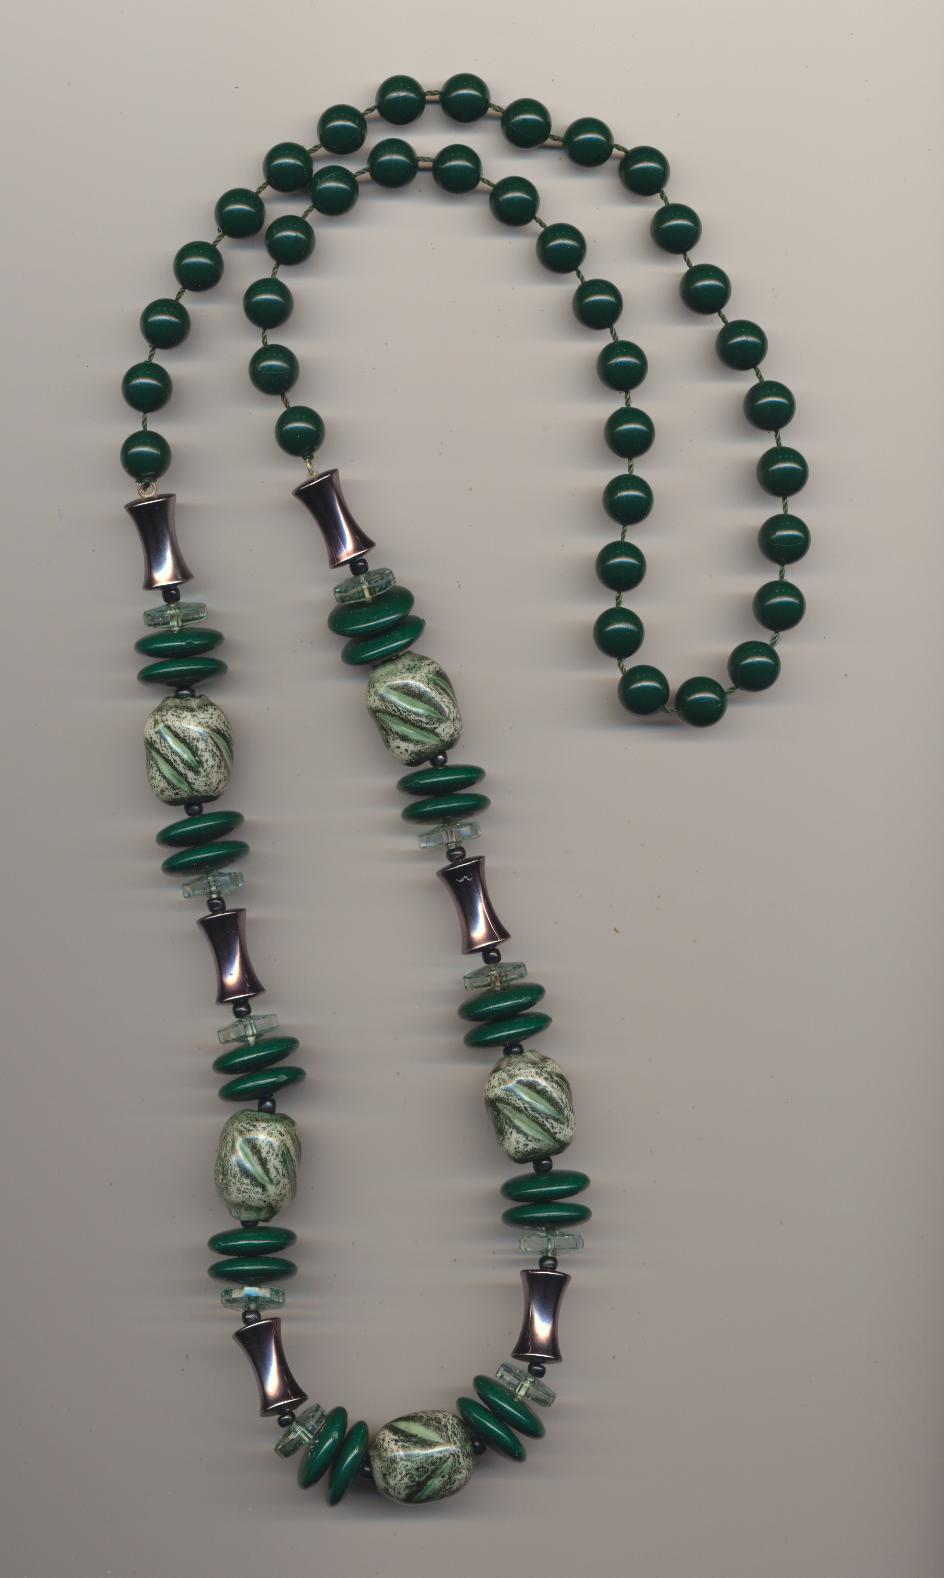 Necklace made of imitation and real green plastic beads, 1970's, length 32'' 82cm.